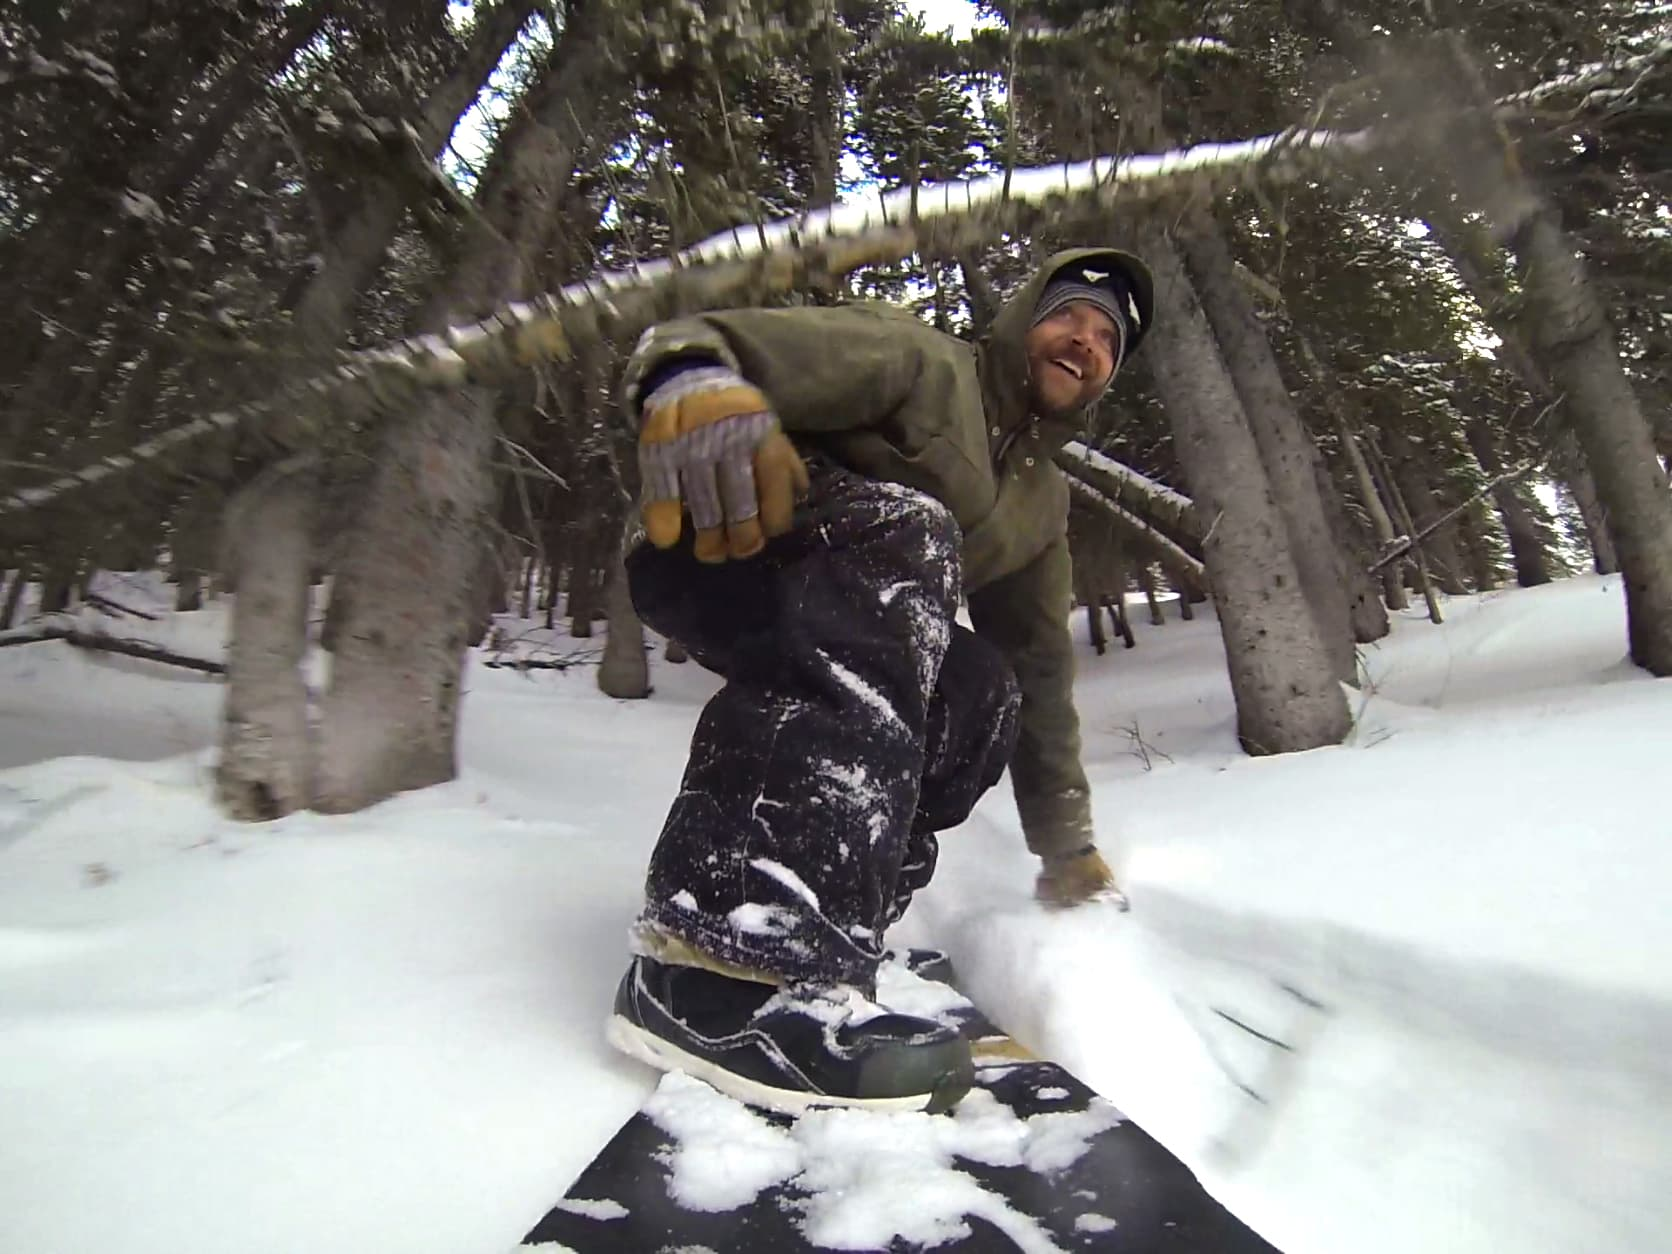 Brandon Saunders getting low on his grassroots powsurfer.